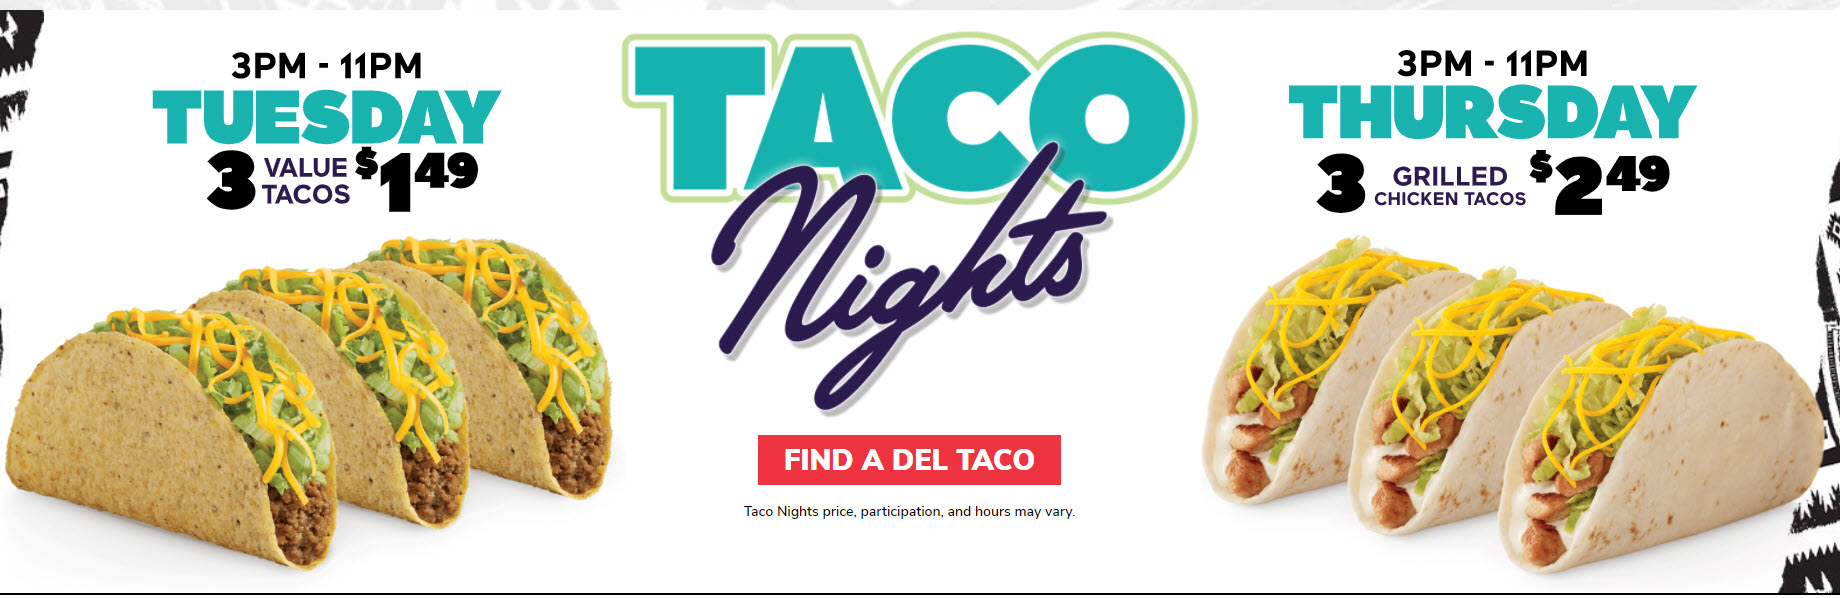 Del Taco Tuesday and Thursday Deals